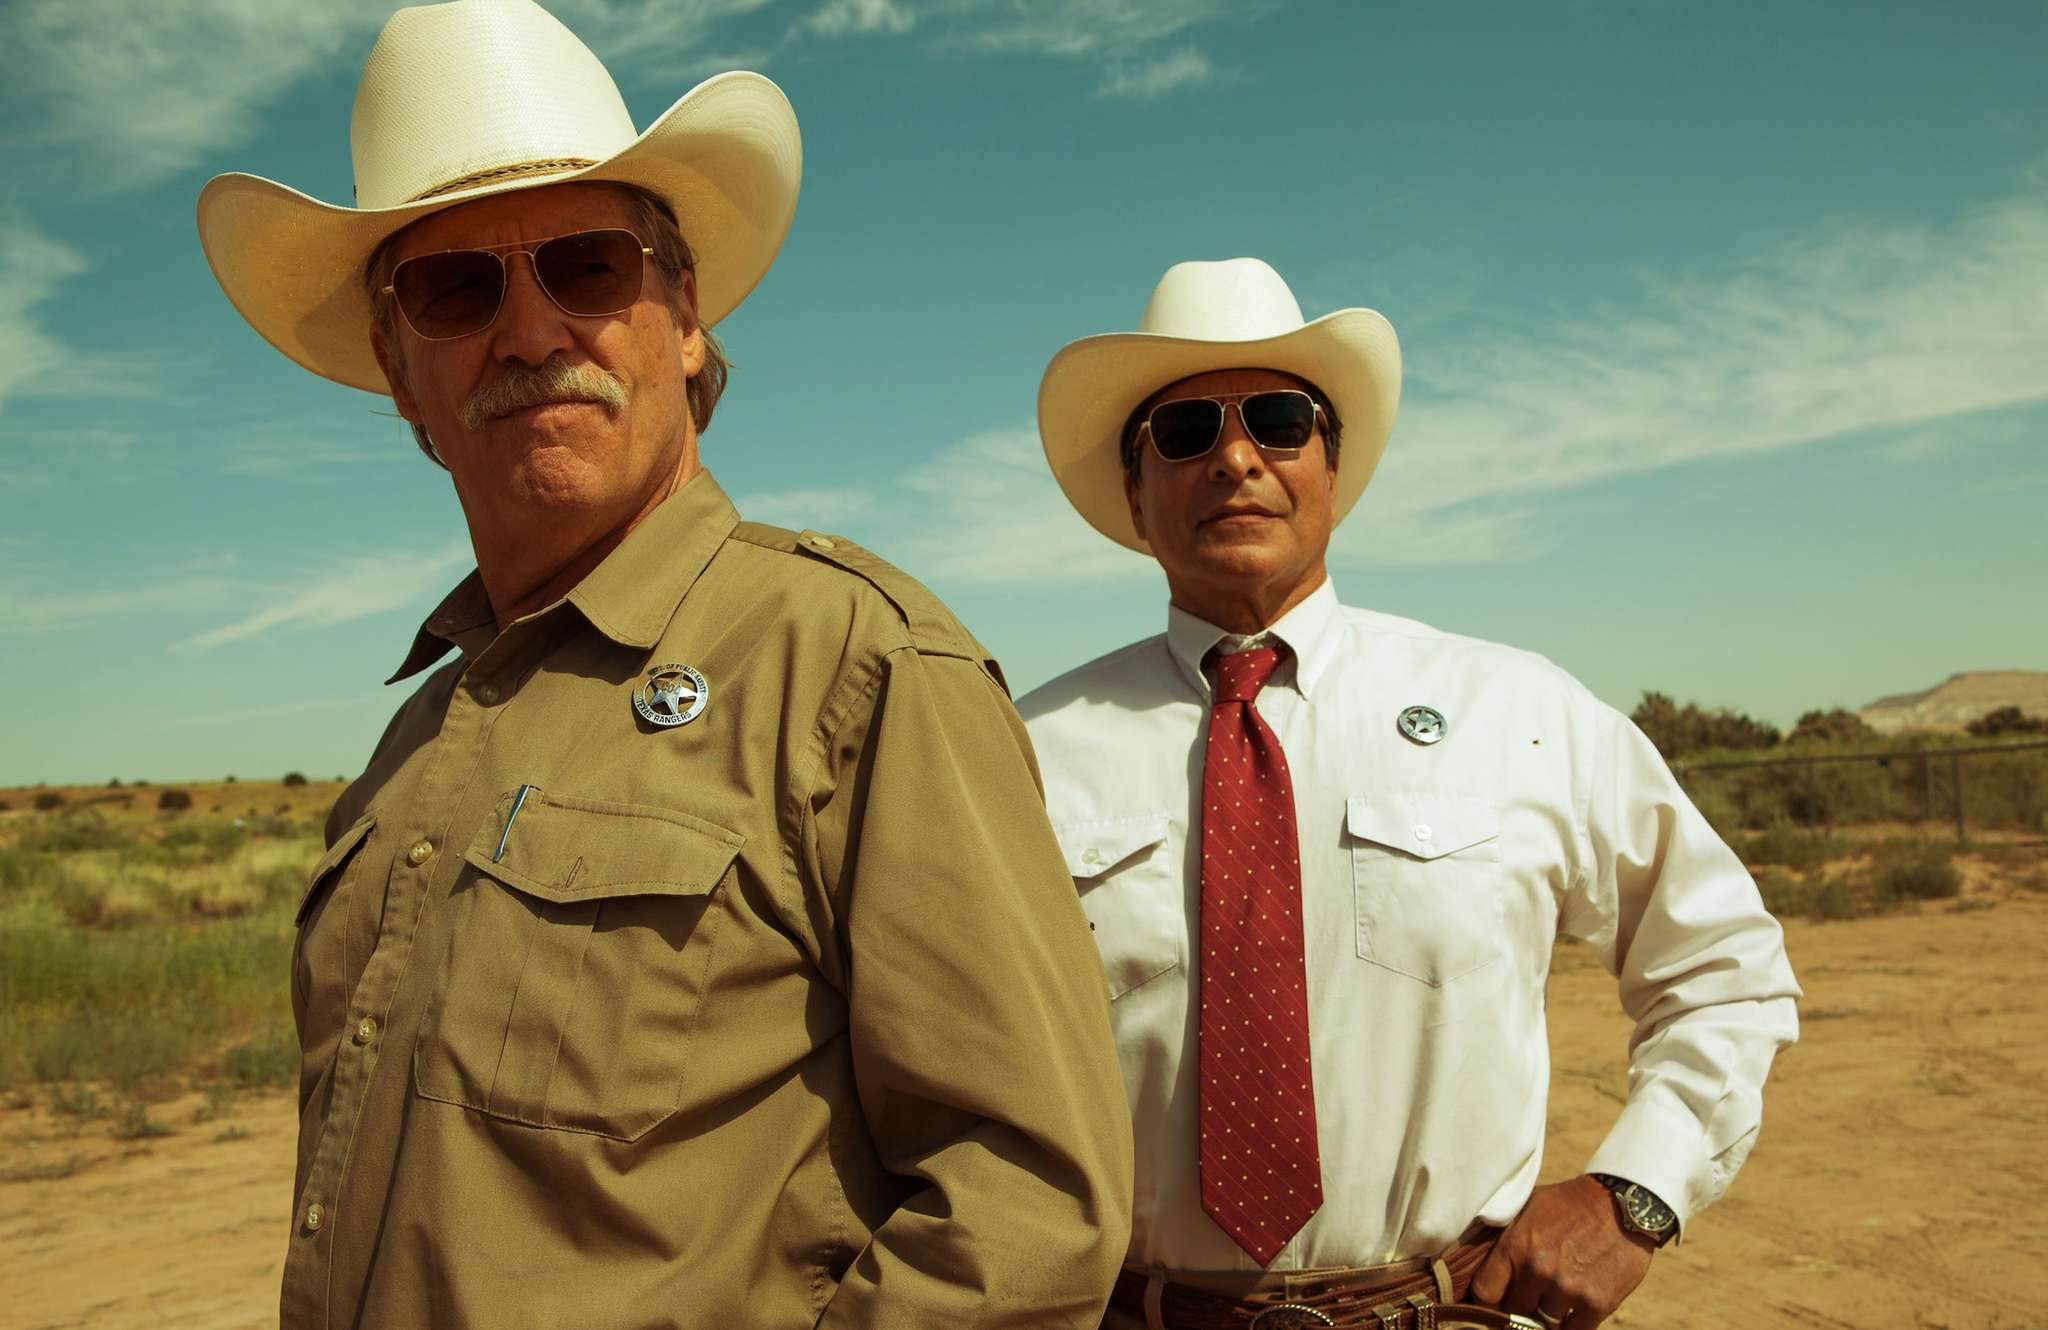 """Hot on the trail: Jeff Bridges (left) and Gil Birmingham are crusty old Texas Rangers after a pair of bank-robbing brothers in the contemporary western """"Hell or High Water."""" LOREY SEBASTIAN / CBS"""